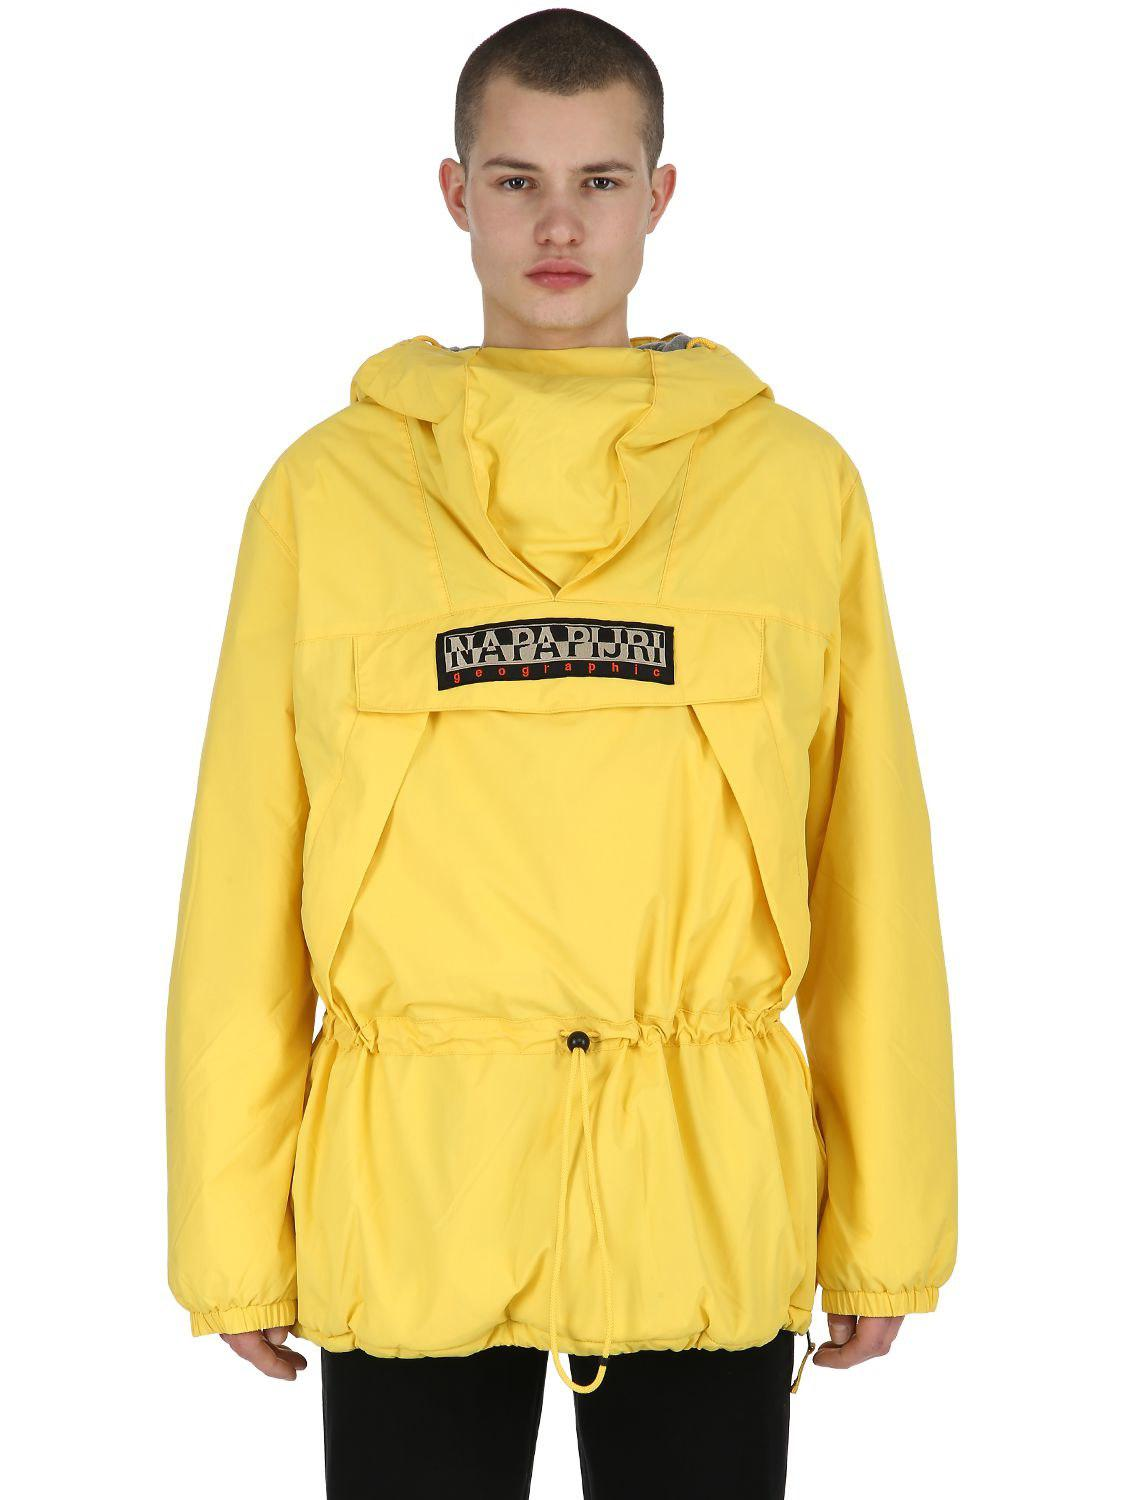 Cheap Ebay SKIDOO TRIBE JACKET Buy Cheap Wide Range Of Pay With Paypal Cheap Price The Cheapest Cheap Online Buy Cheap Looking For D0TcSs